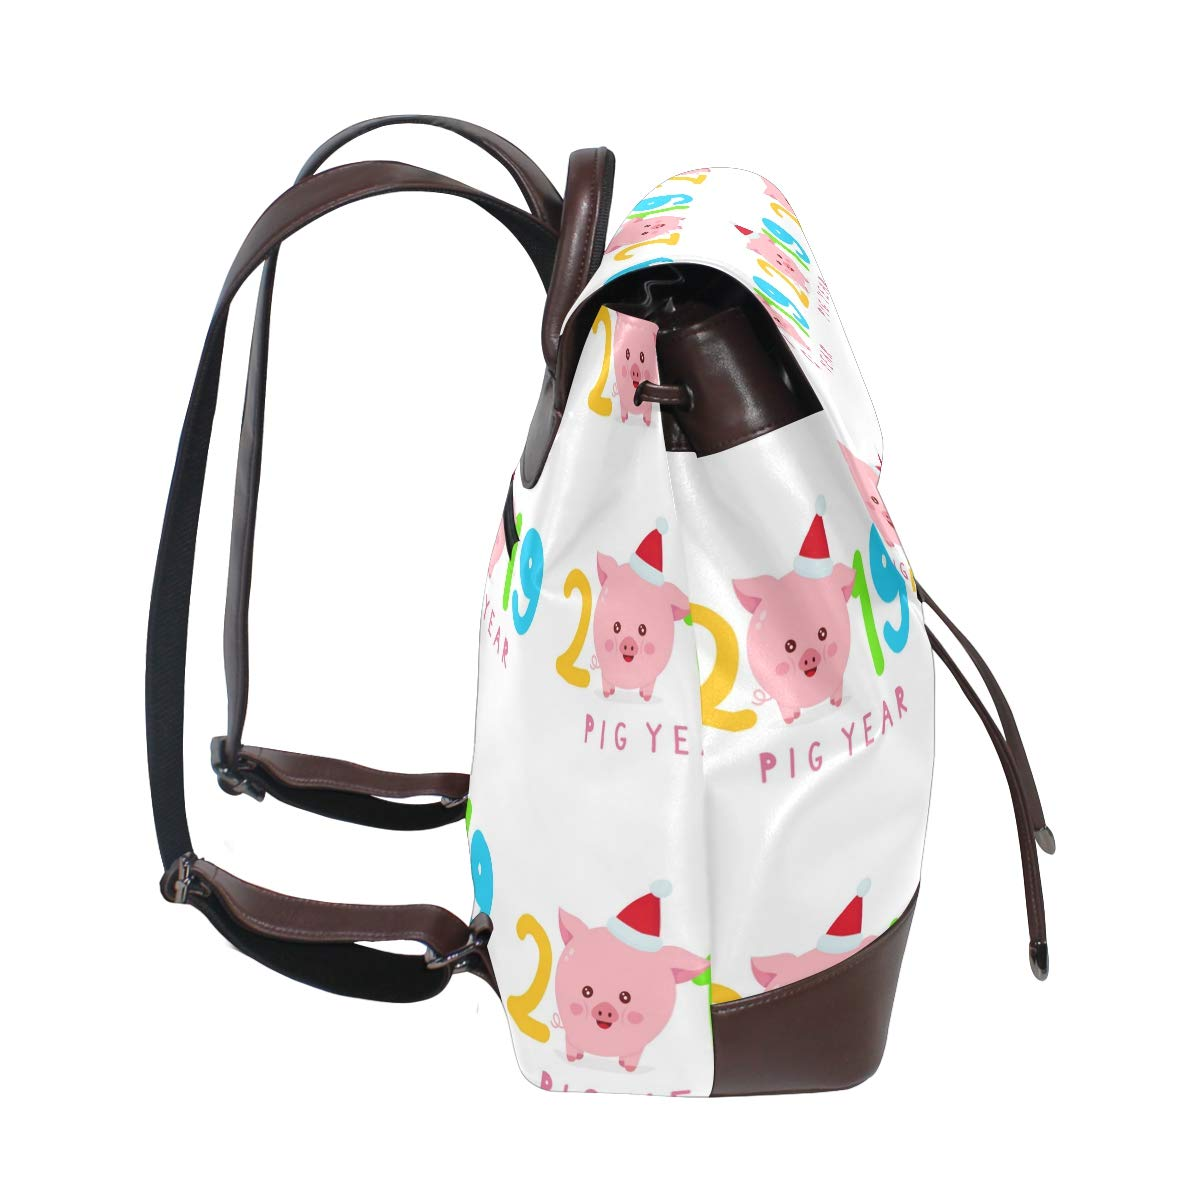 Leather 2019 With Cute Pig Backpack Daypack Bag Women